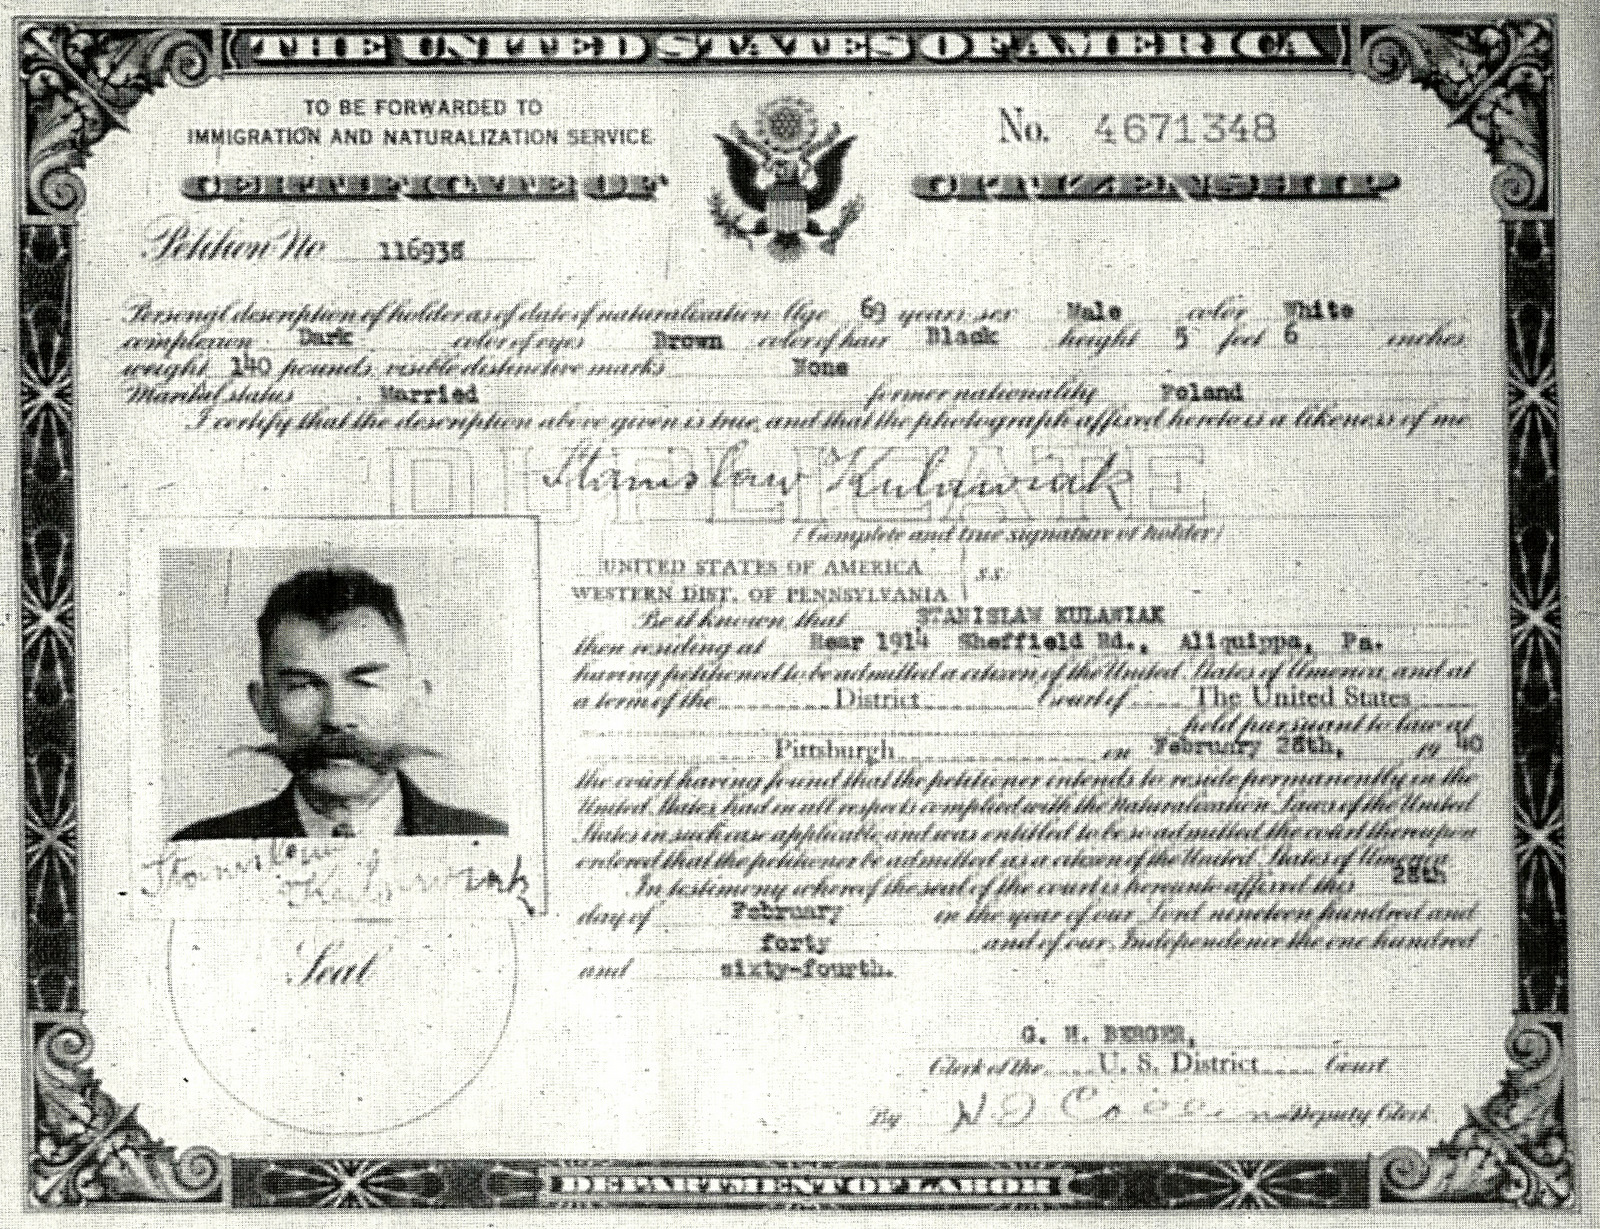 How To Get A Us Naturalization Certificate